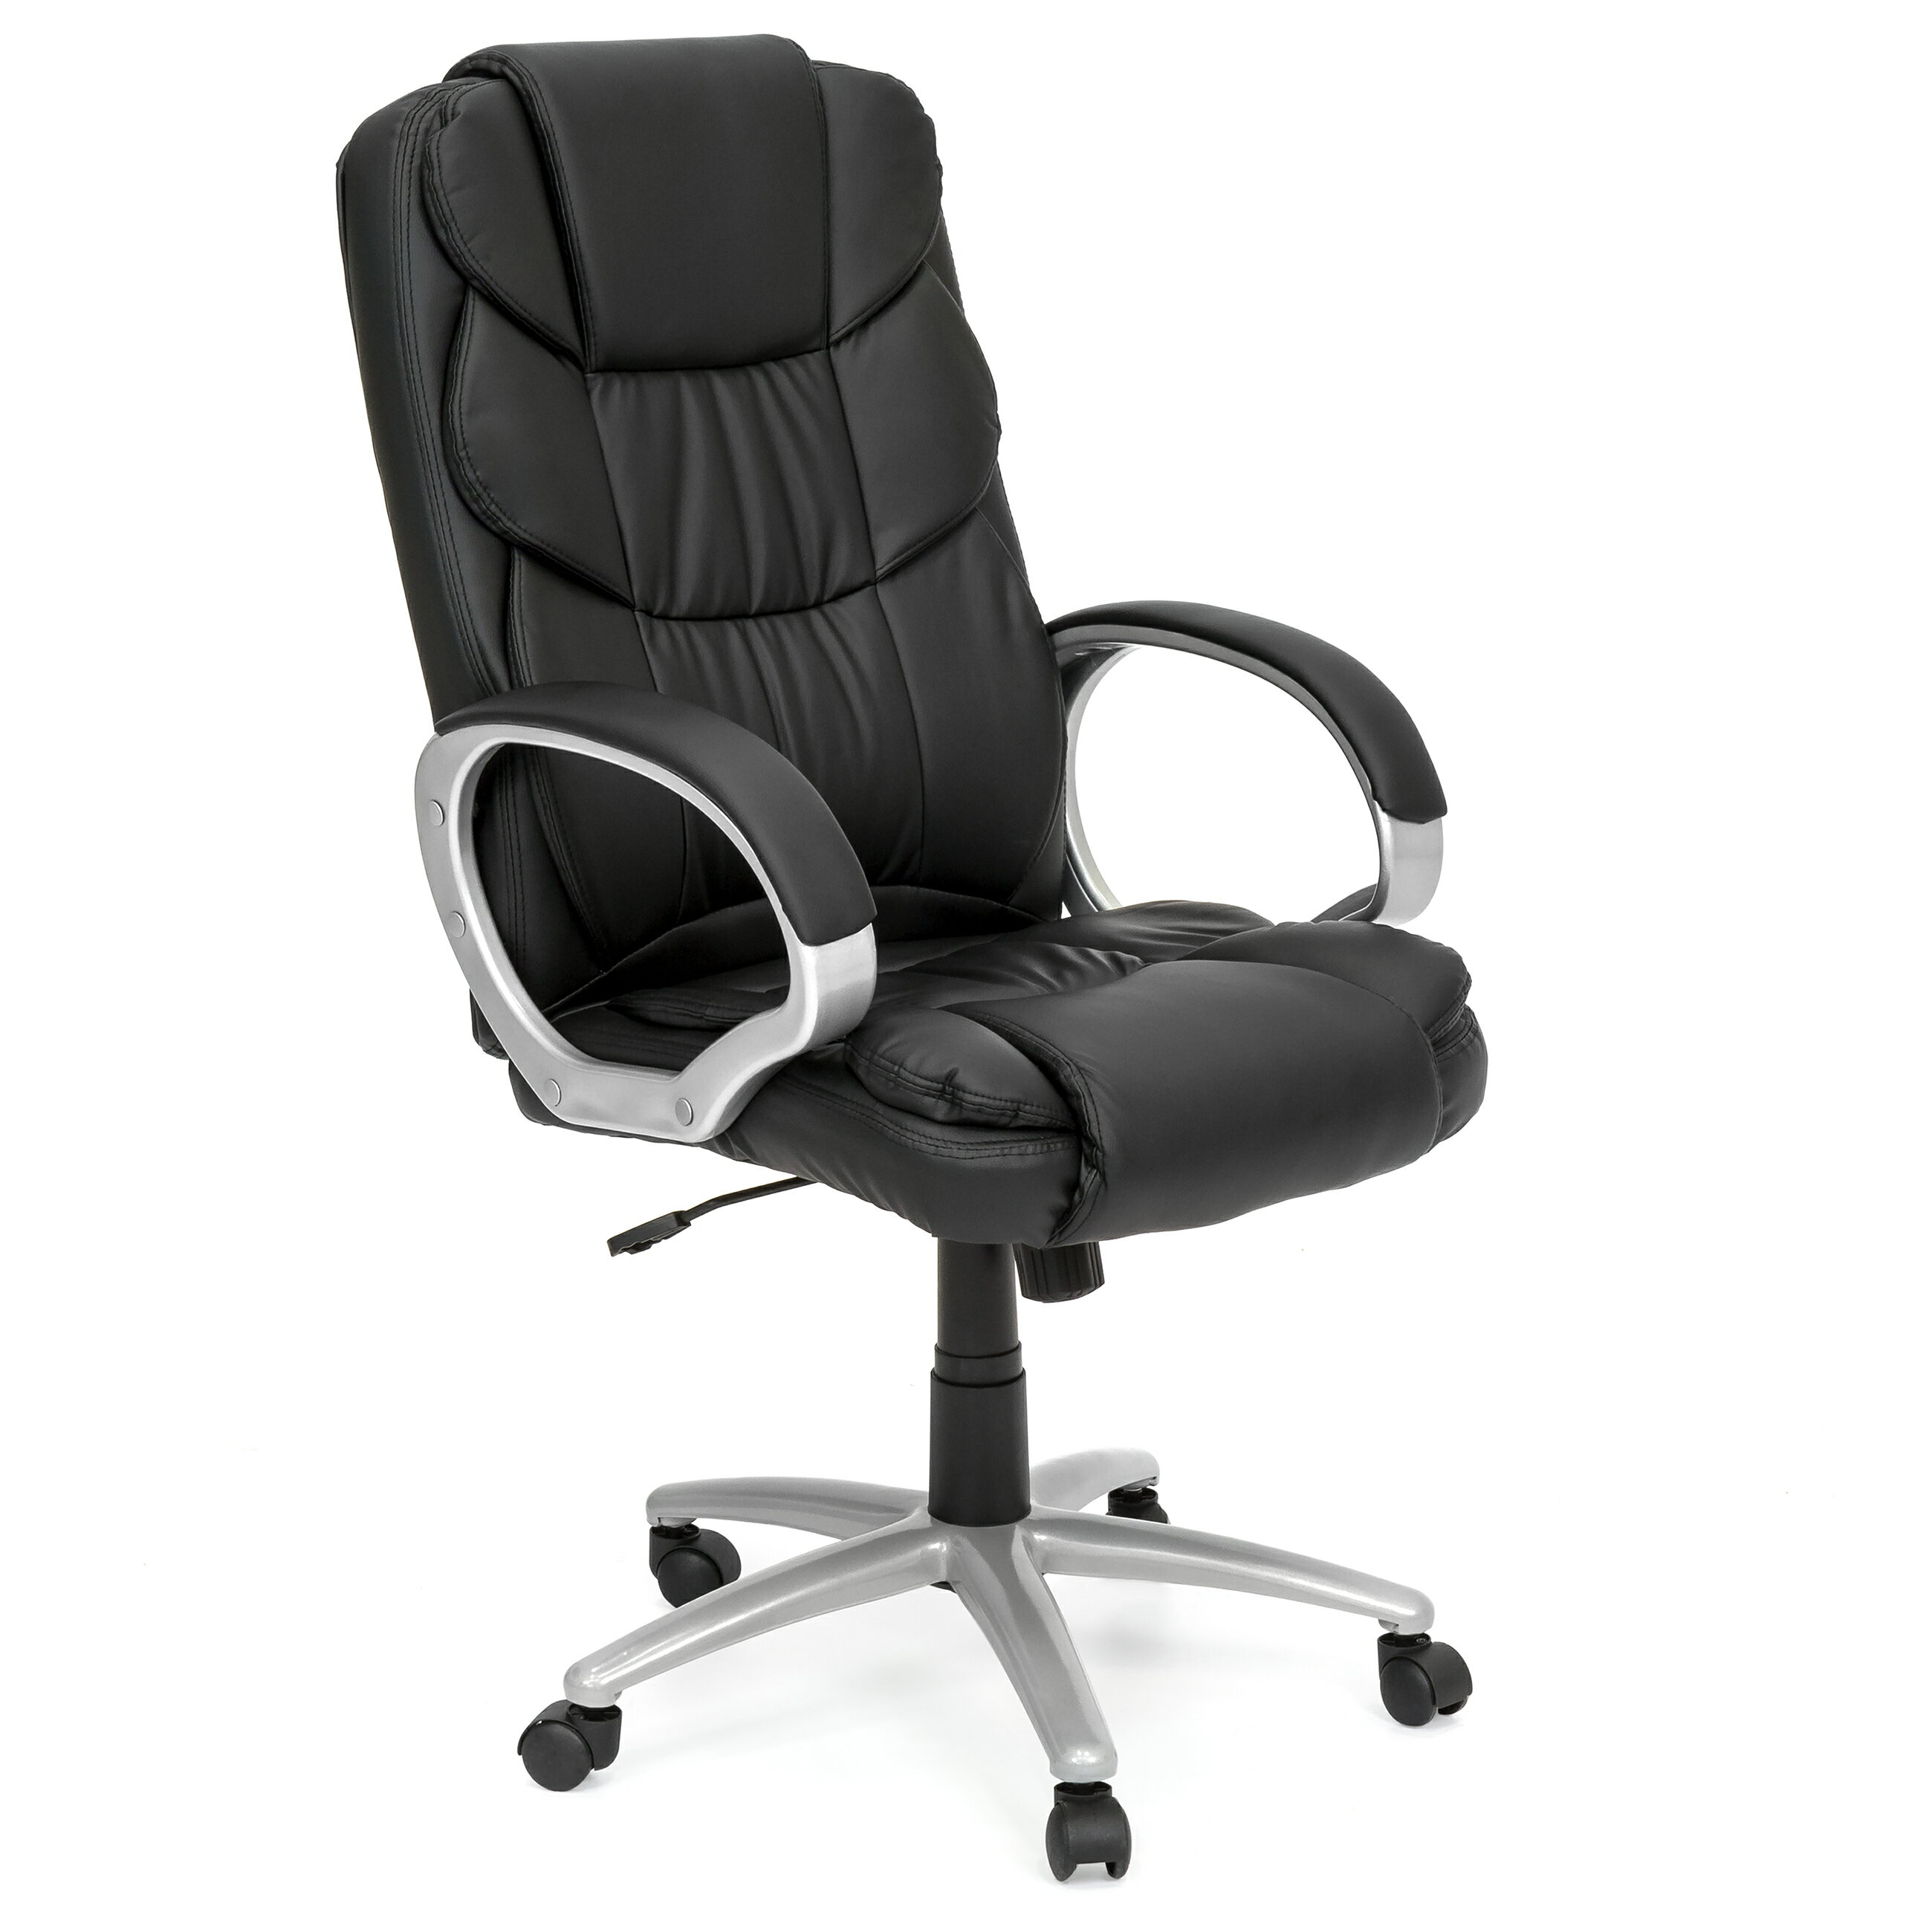 Best Choice Products Ergonomic PU Leather High Back Office Chair, Black 0